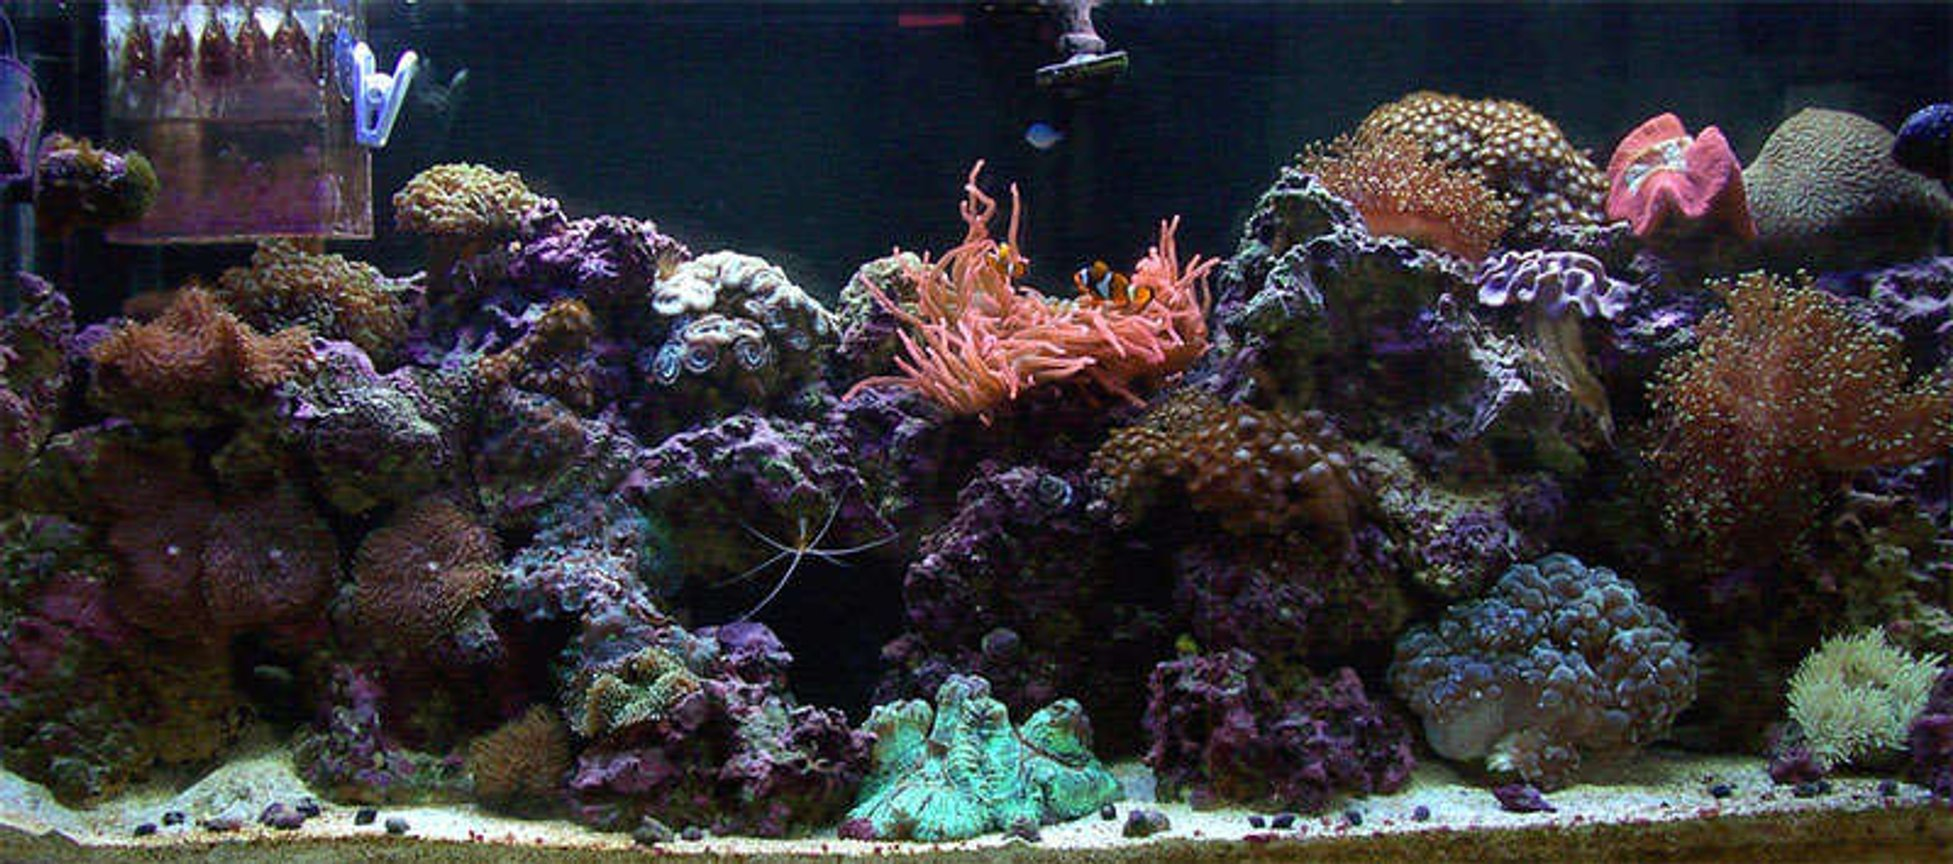 55 gallons reef tank (mostly live coral and fish) - 55gal reef